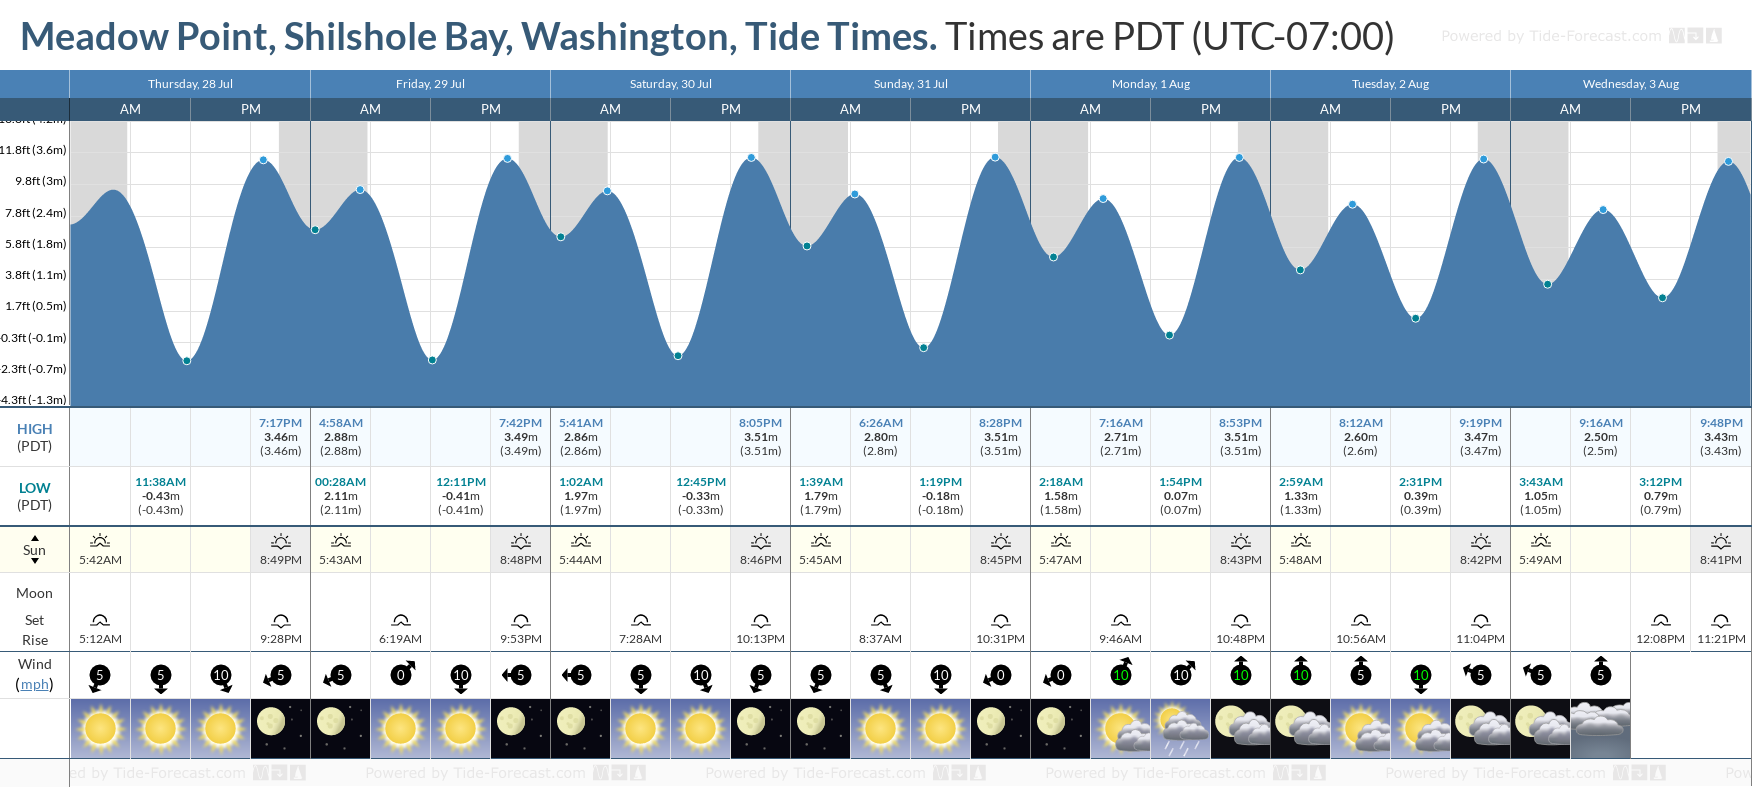 Meadow Point, Shilshole Bay, Washington Tide Chart including high and low tide tide times for the next 7 days